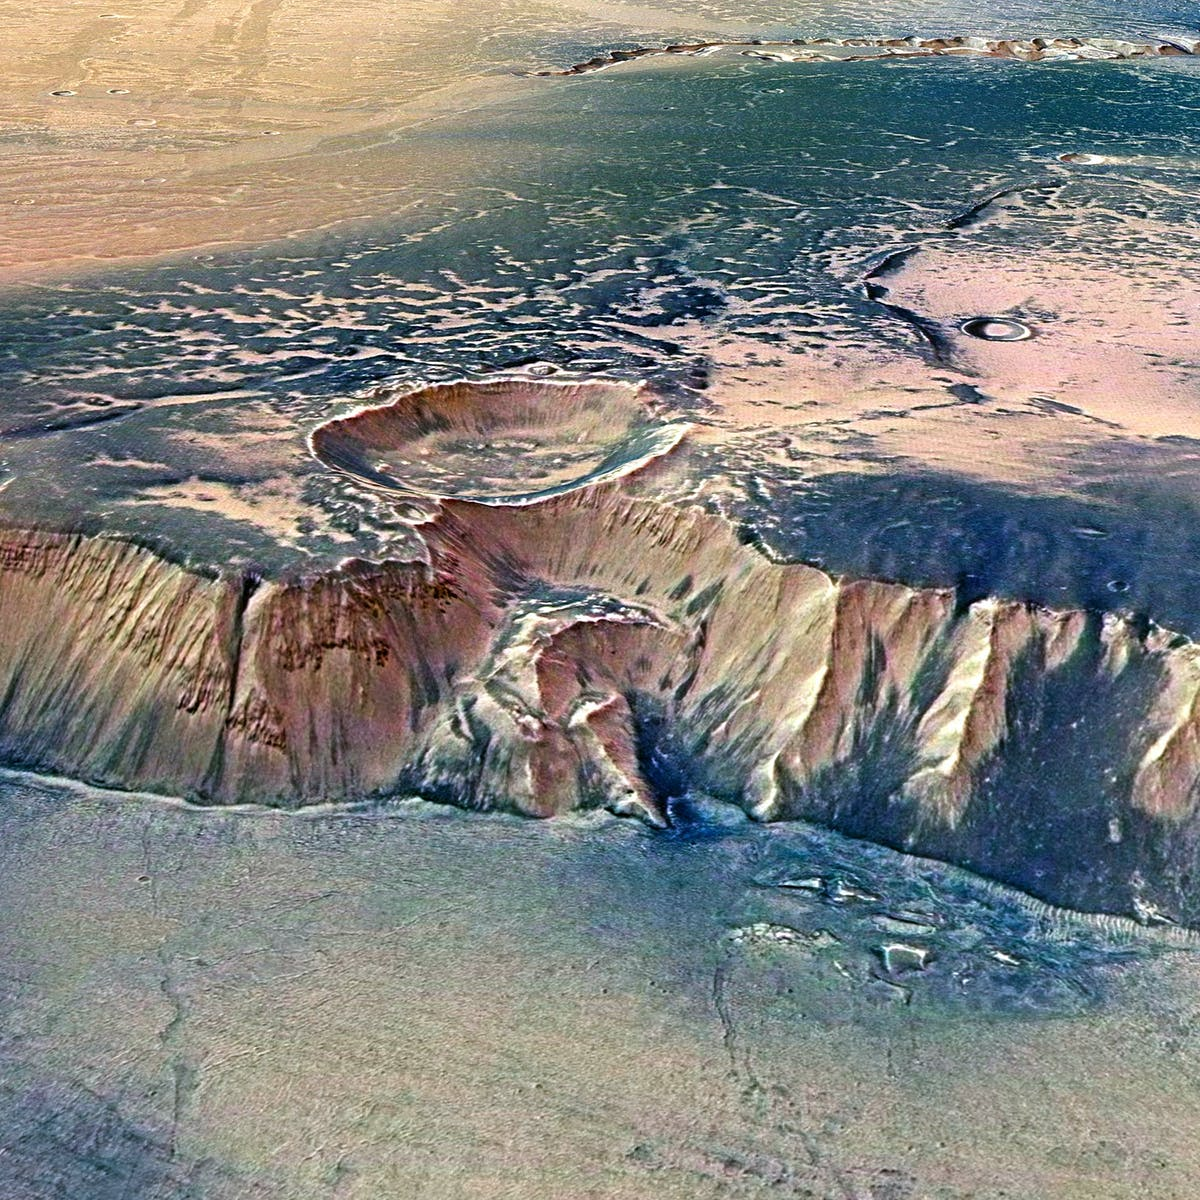 NASA Shares 360° Image of Mars Made With Facebook's Oculus Rift Technology